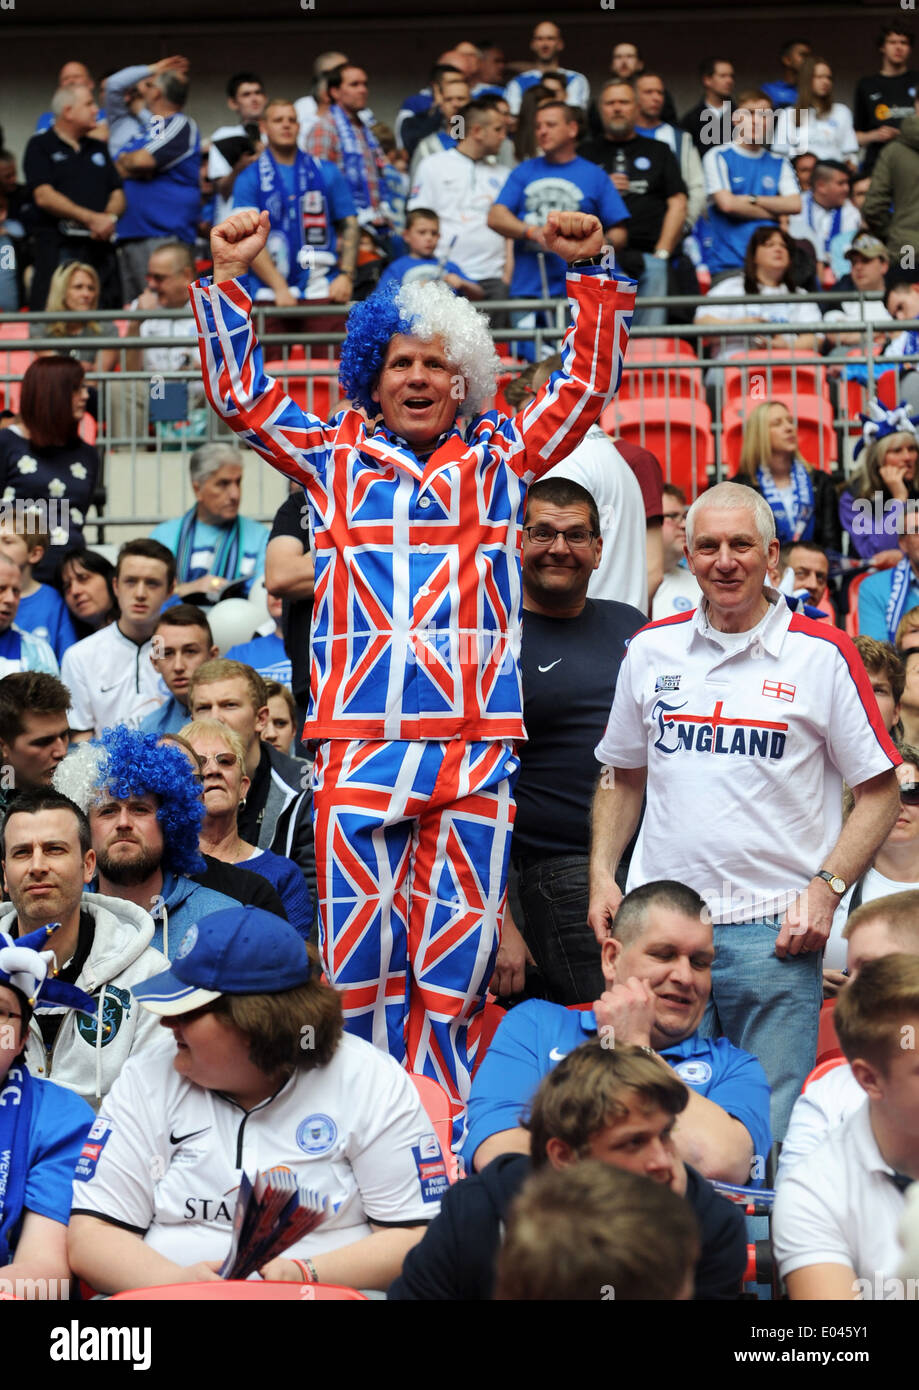 Peterborough United football supporter wearing patriotic union jack suit - Stock Image